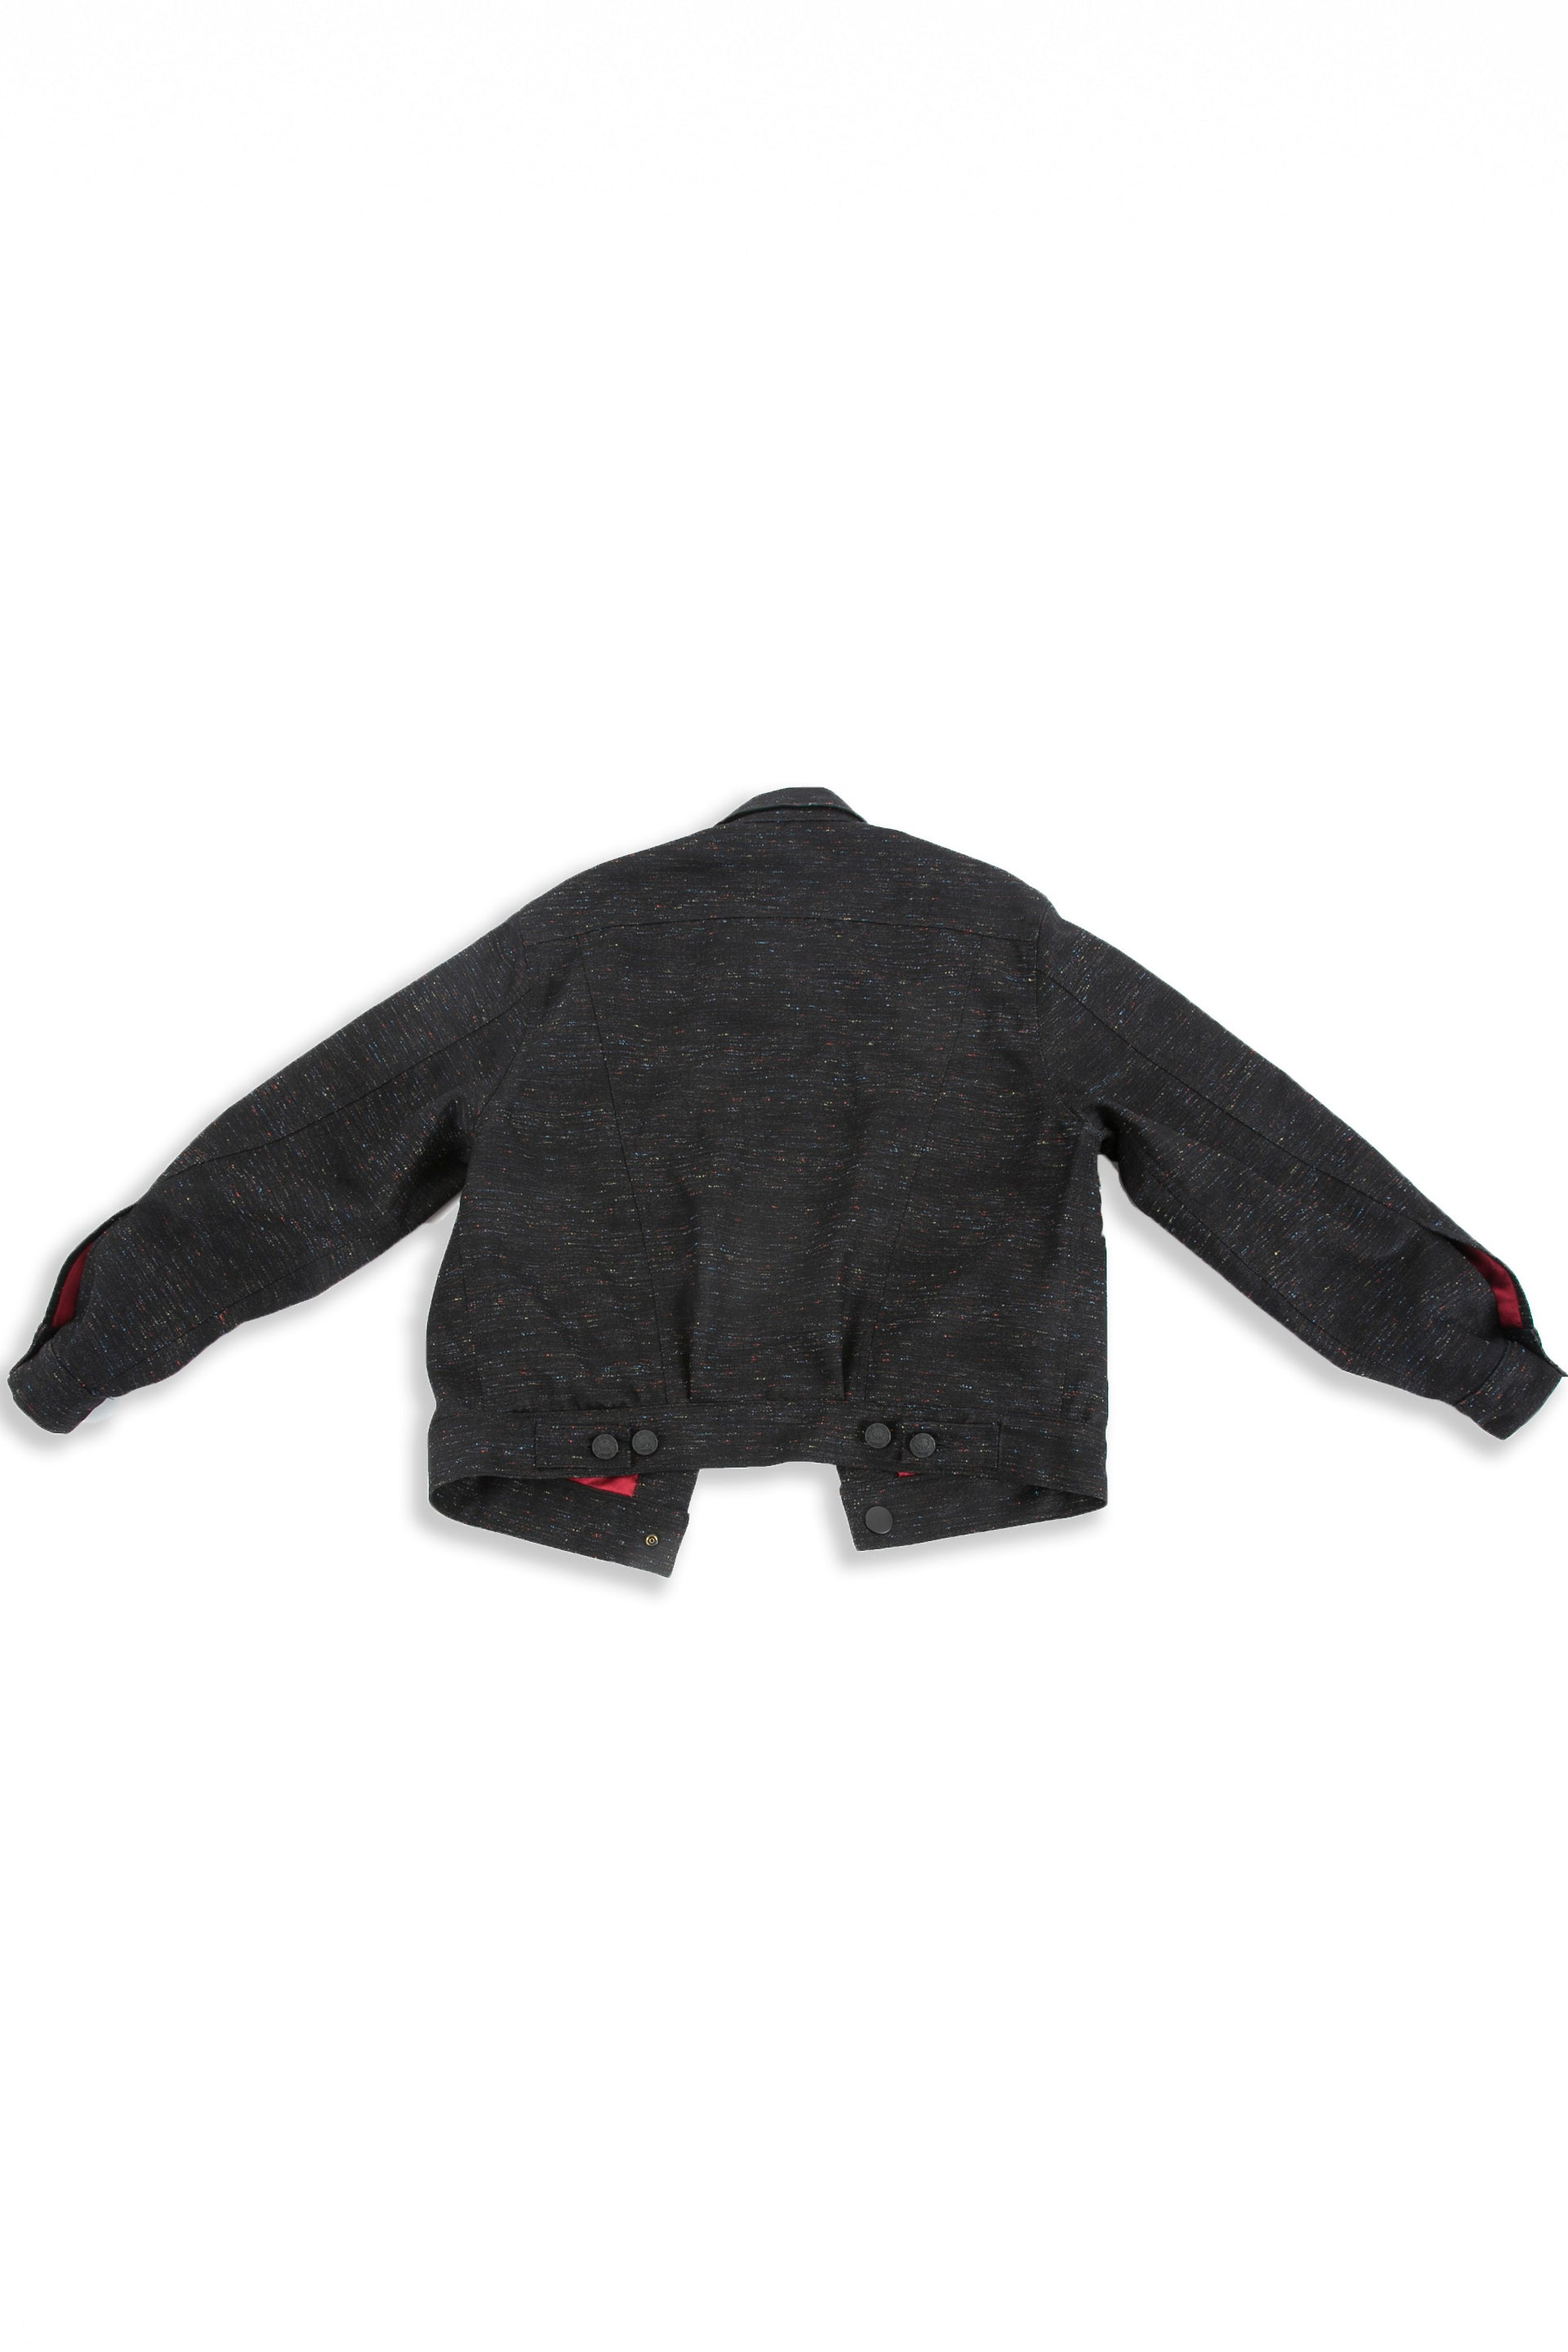 Back of Reversible Parlor black denim jacket